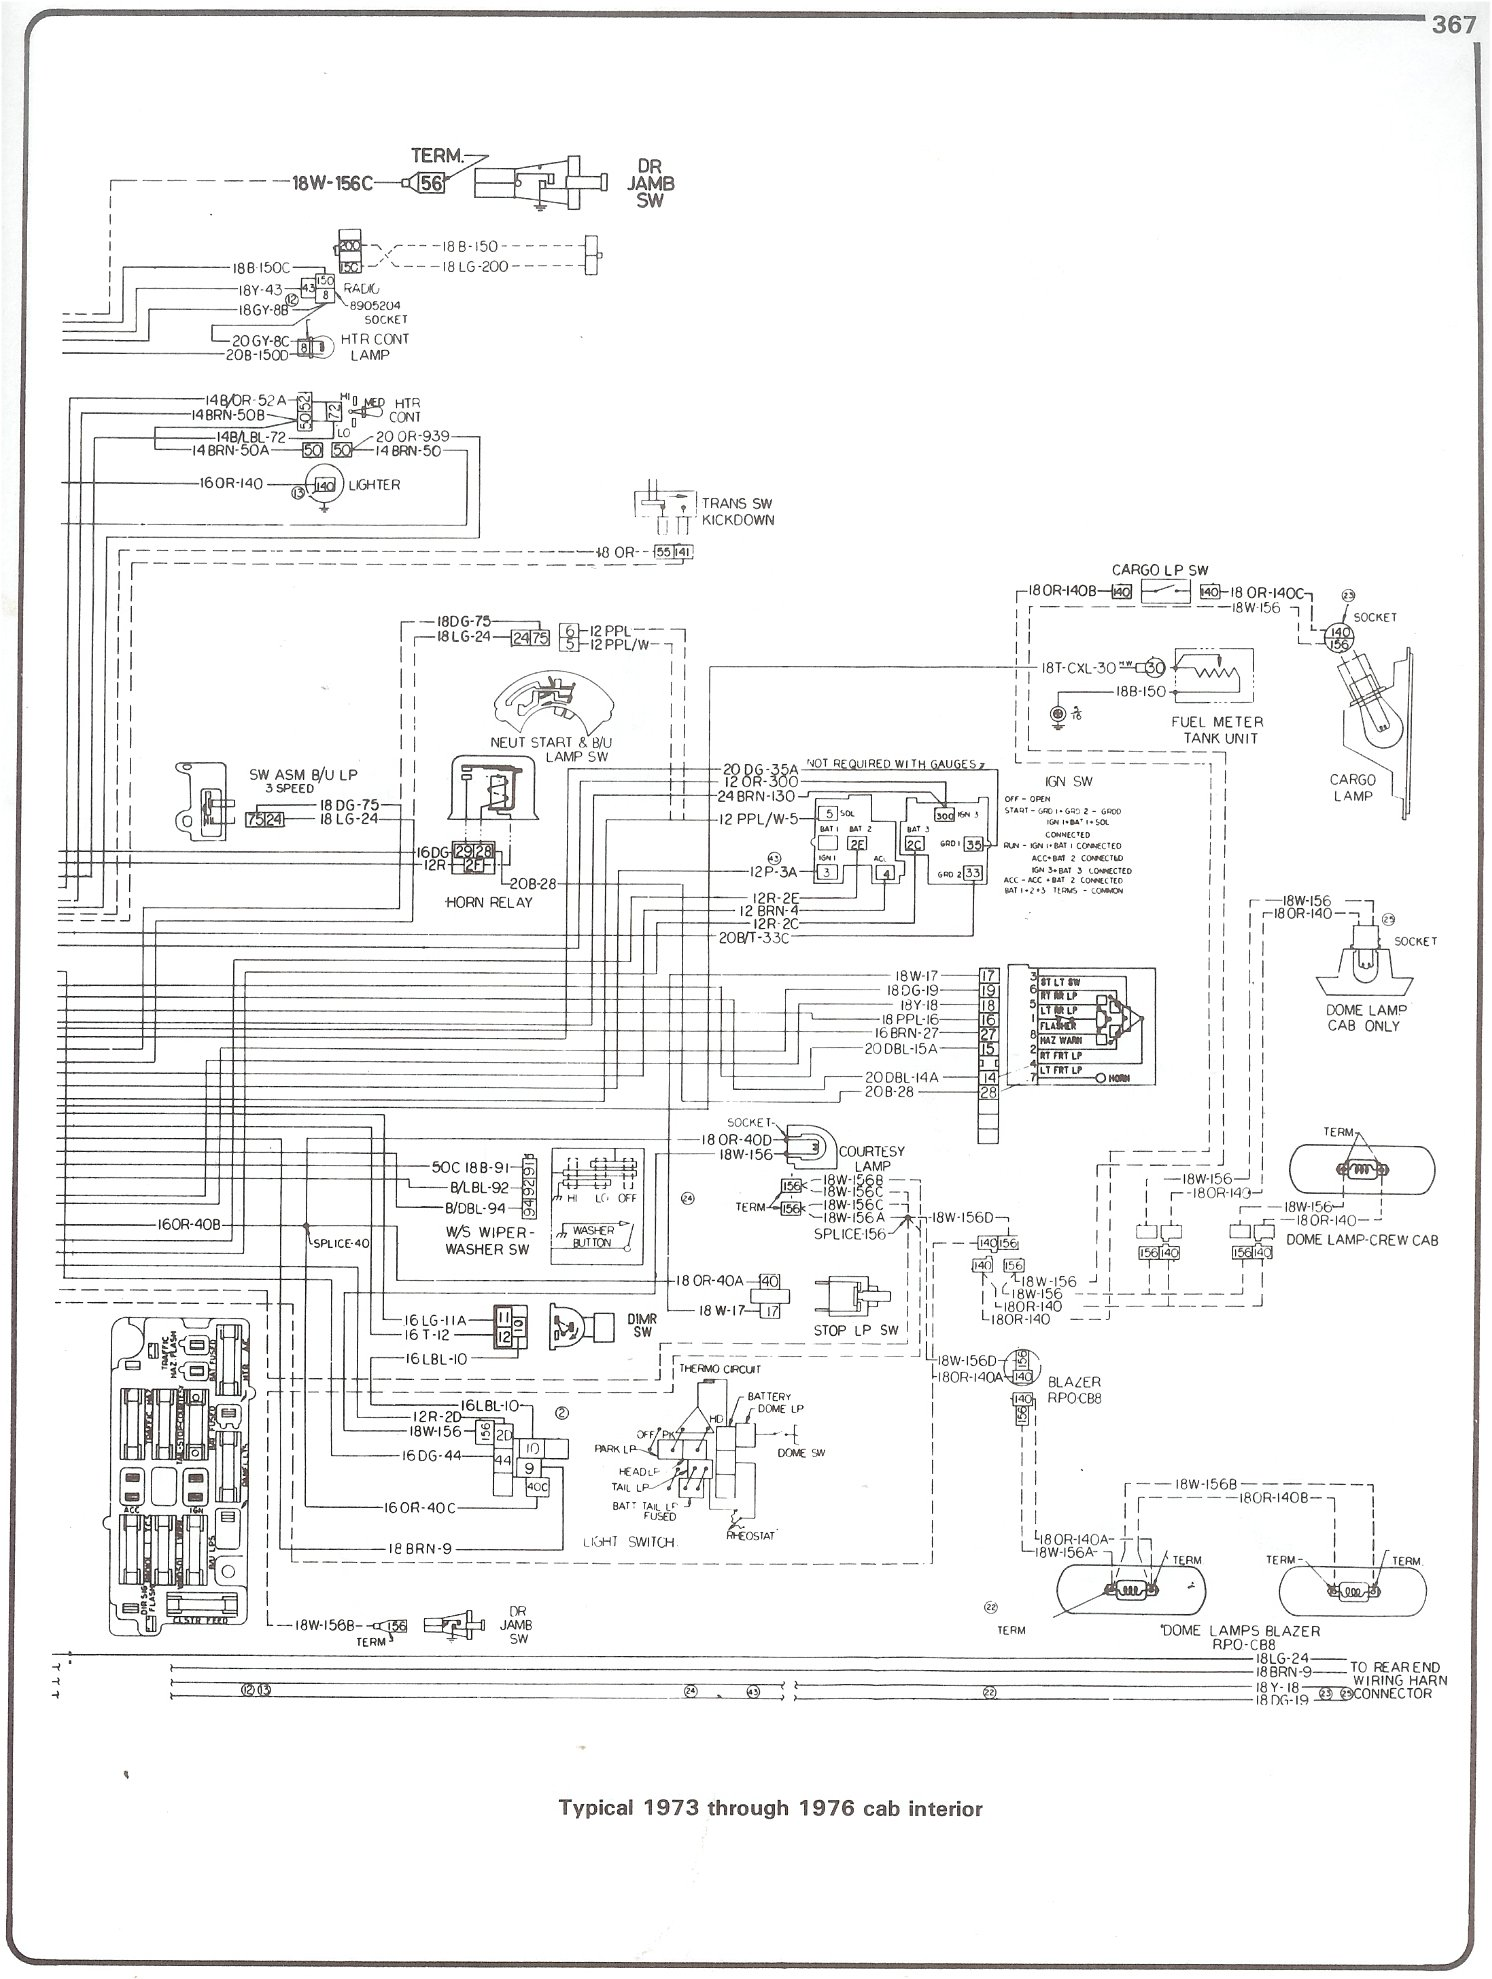 complete 73 87 wiring diagrams Wiring Diagrams for Cadillac